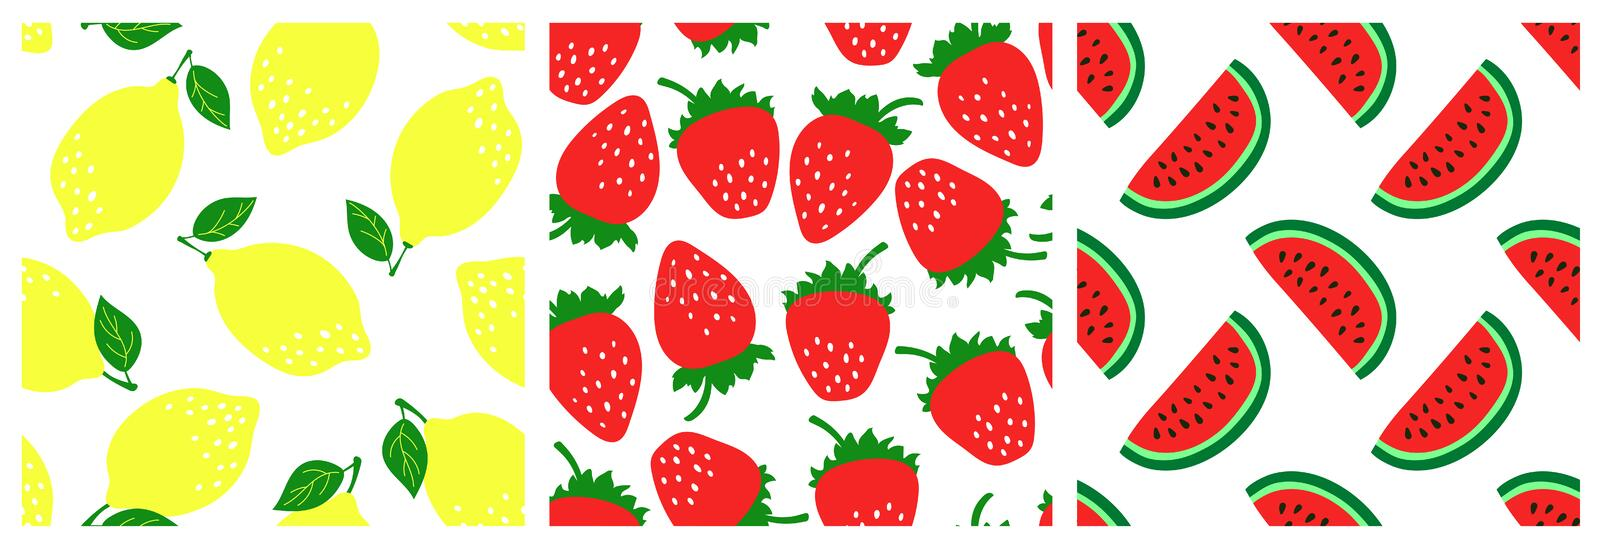 Fruit seamless pattern set. Fashion clothing design. Watermelon, strawberry, lemon. Food print for dress, skirt, linens or curtain stock illustration